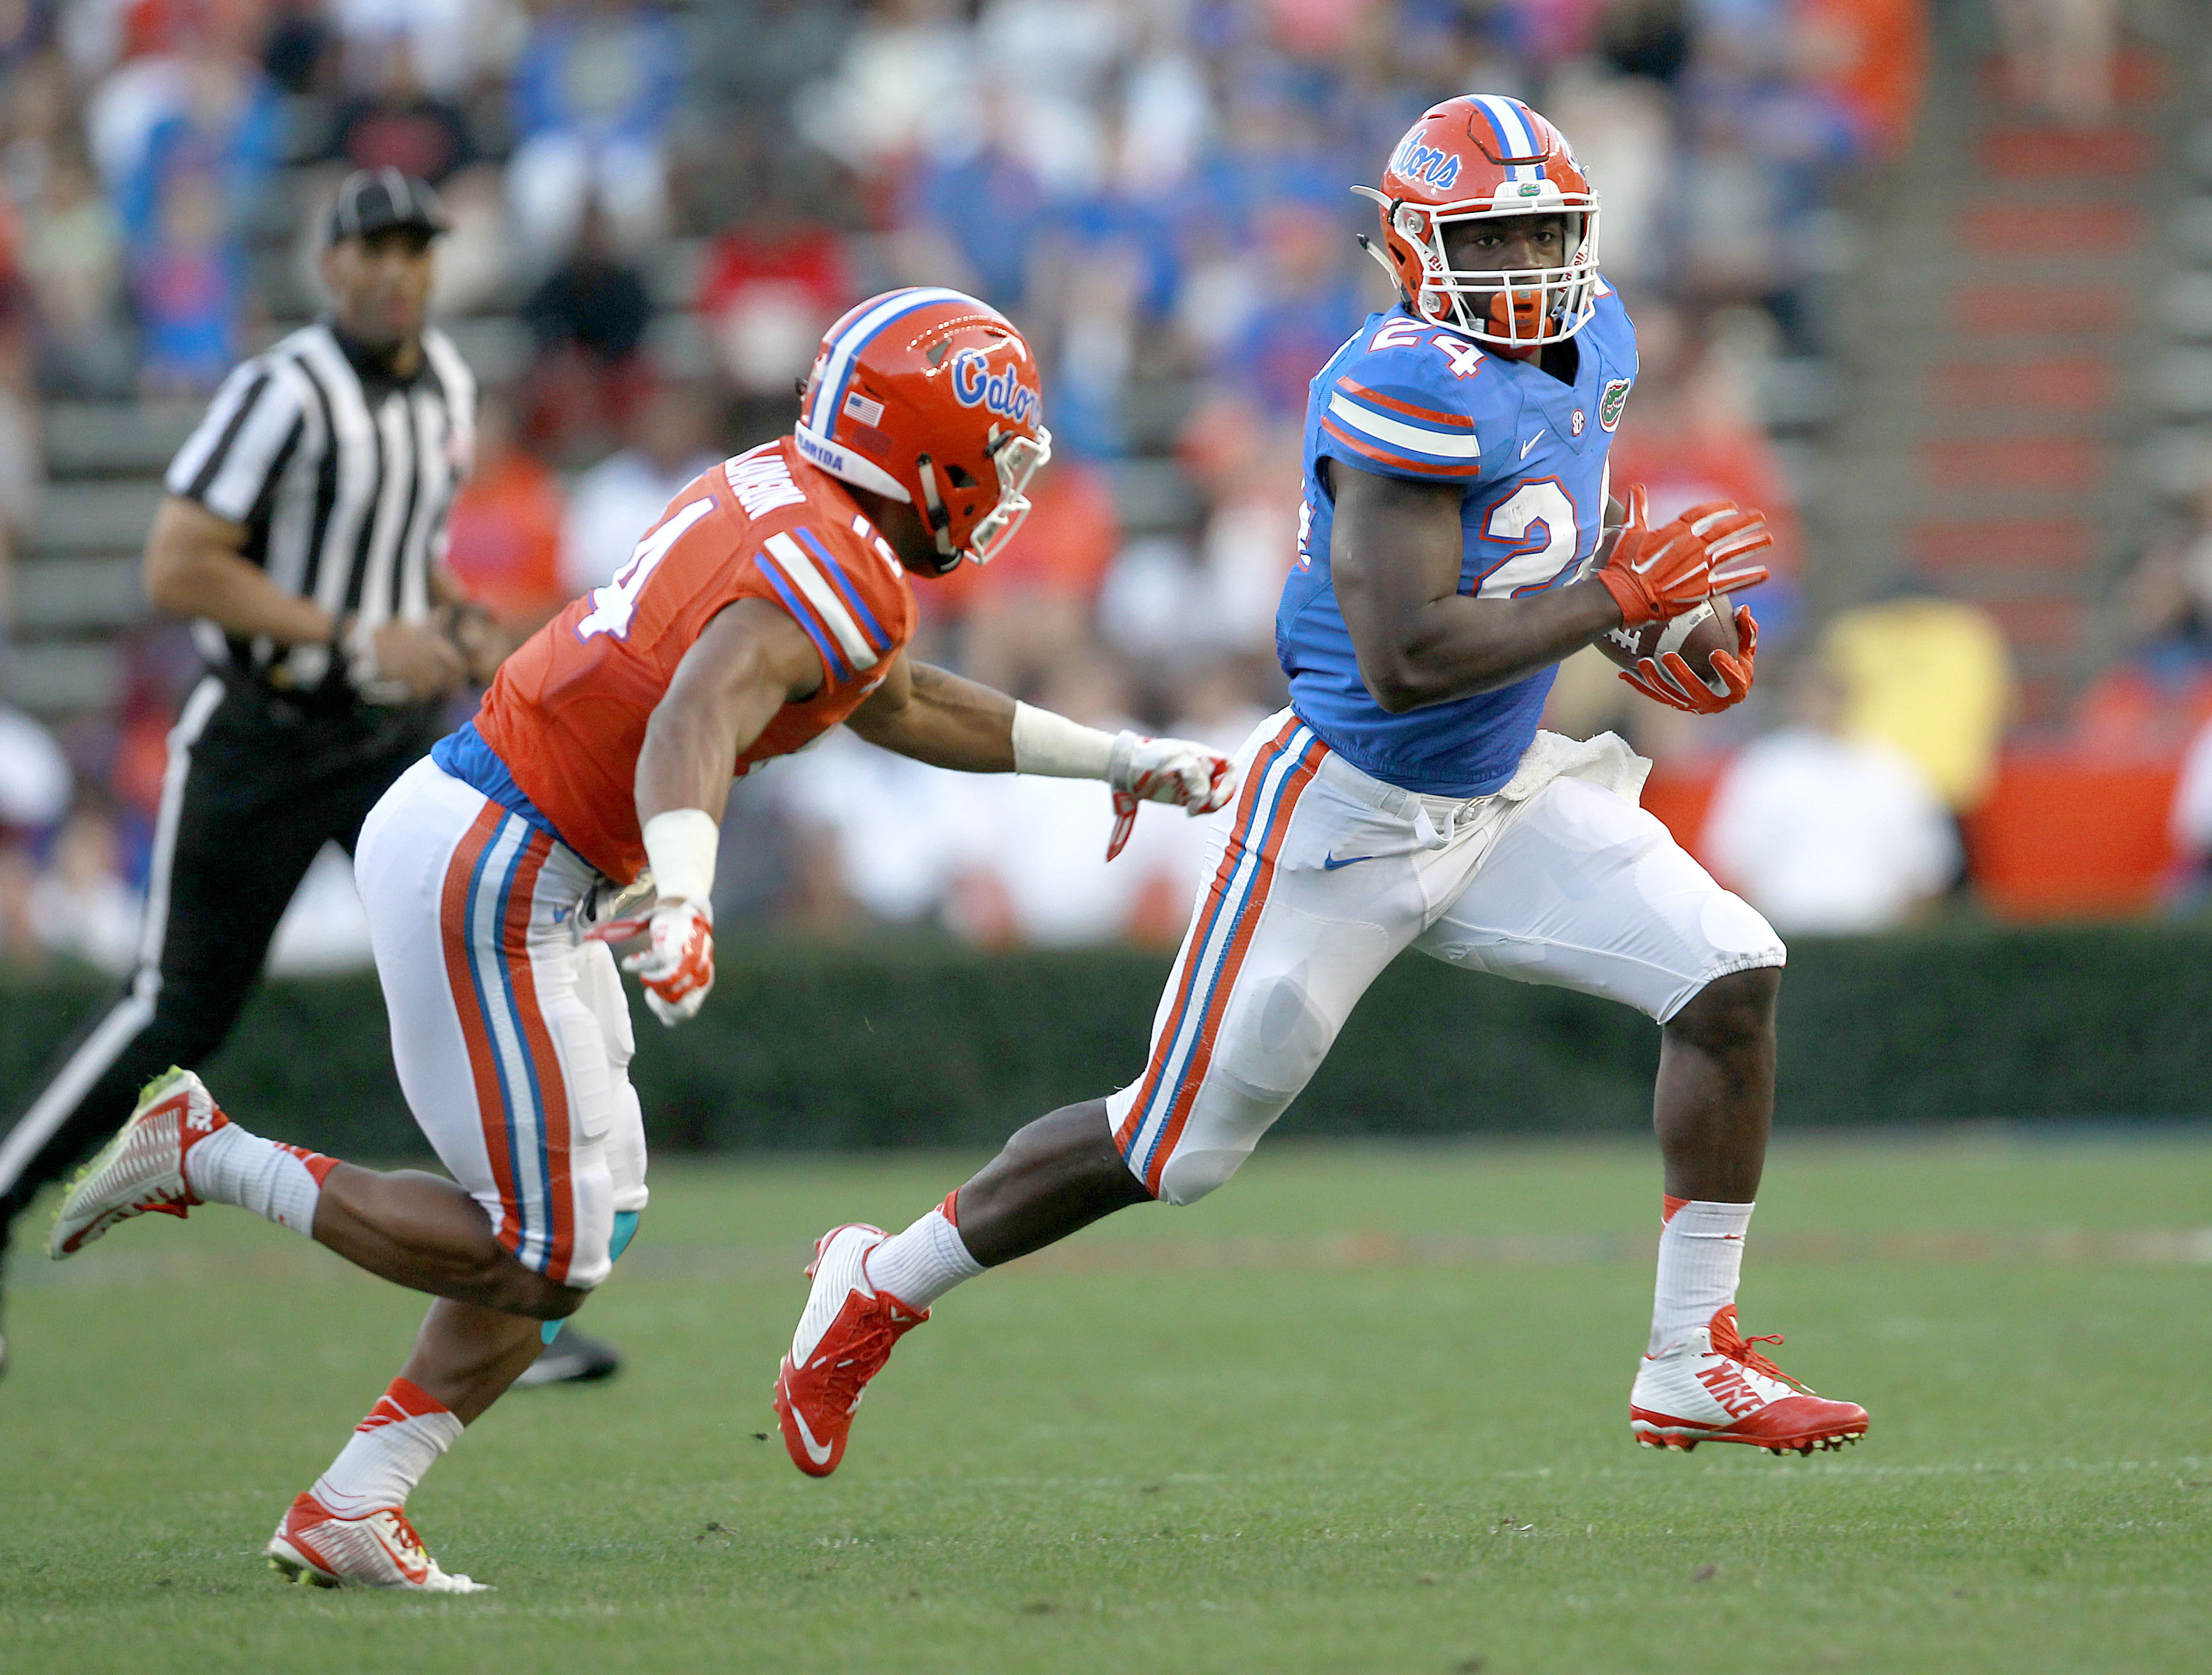 FILE - In this April 8, 2016, file photo, Florida running back Mark Thompson runs upfield past defensive back Chris Williamson during a spring NCAA college football game in Gainesville, Fla. The junior college transfer wants to have 1,000 yards rushing th